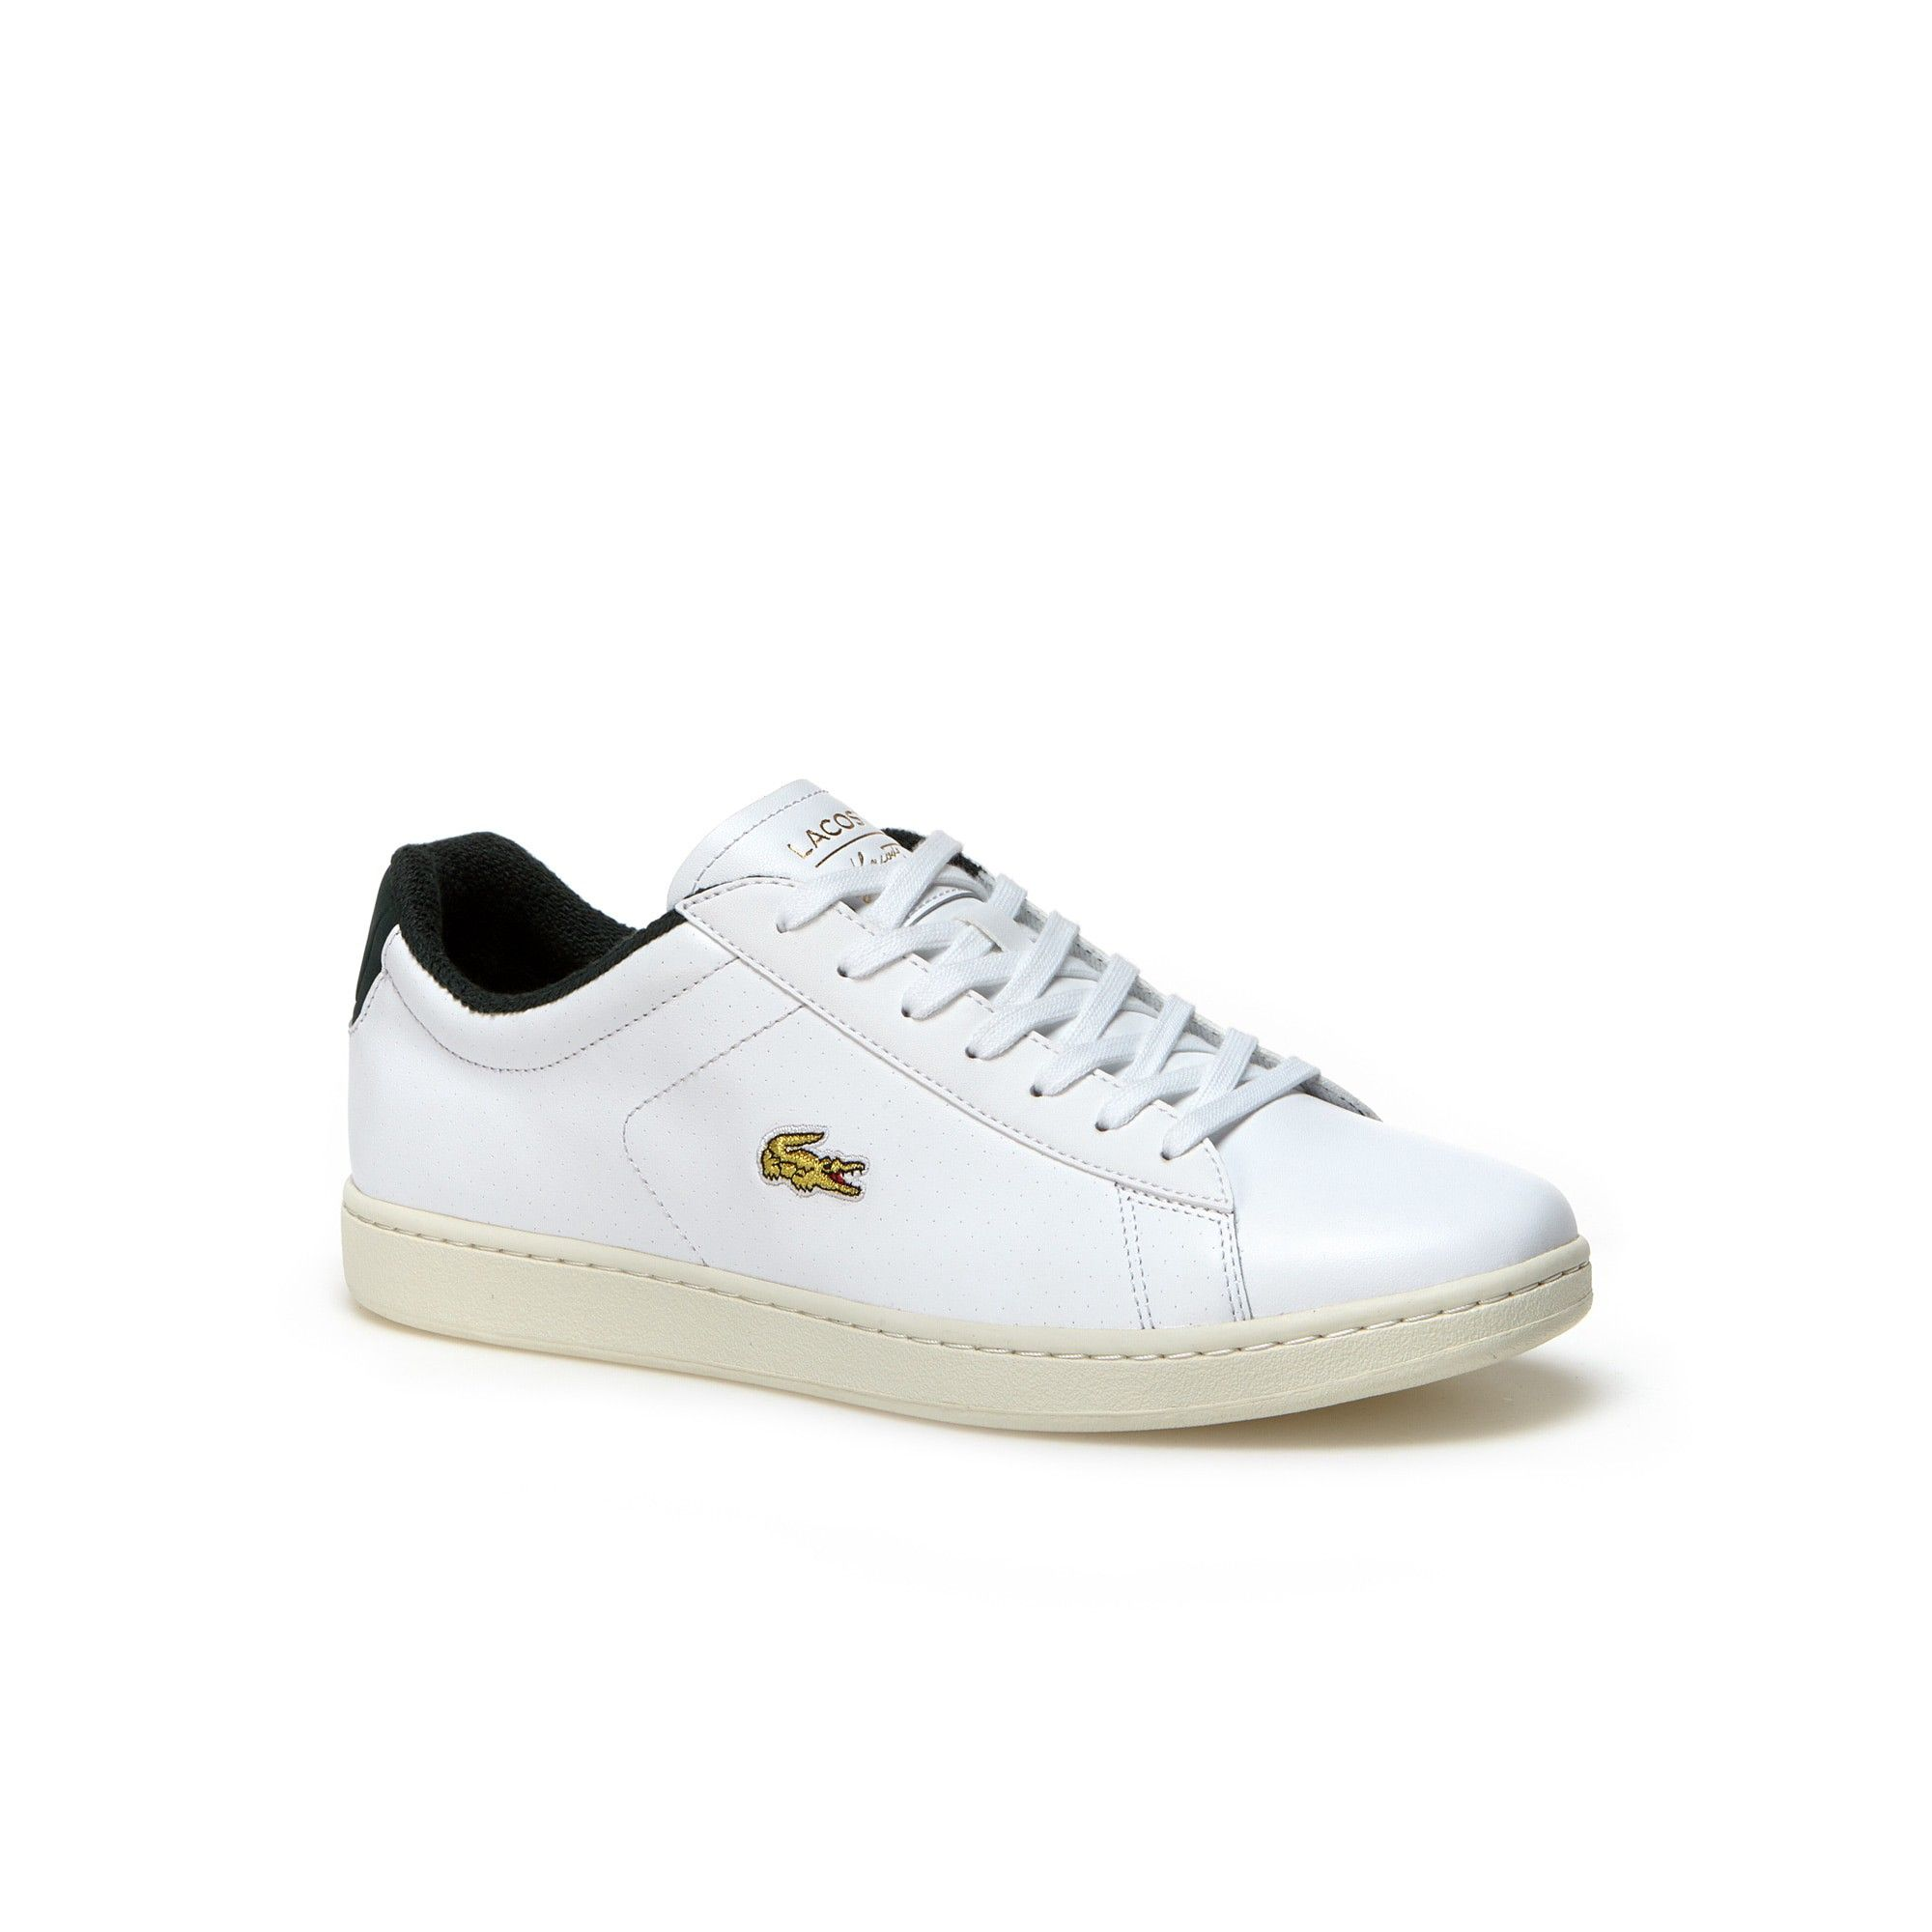 c362bdaa1d00 Lacoste men carnaby evo leather sneakers white green lacoste shoes jpg  2000x2000 Green lacoste shoes